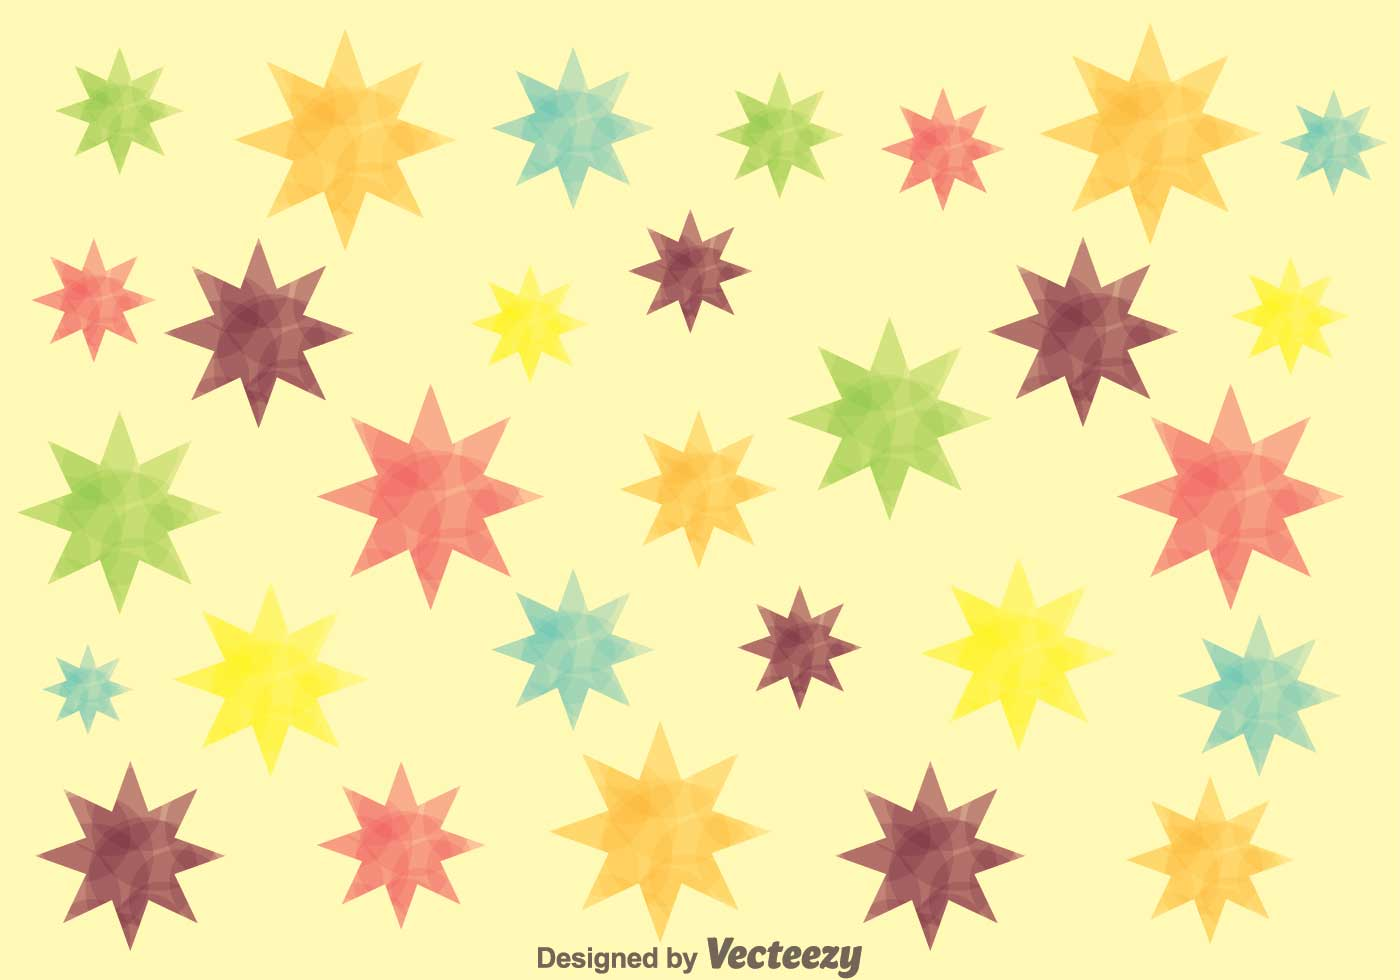 Retro Colorful Star Background - Download Free Vectors ...